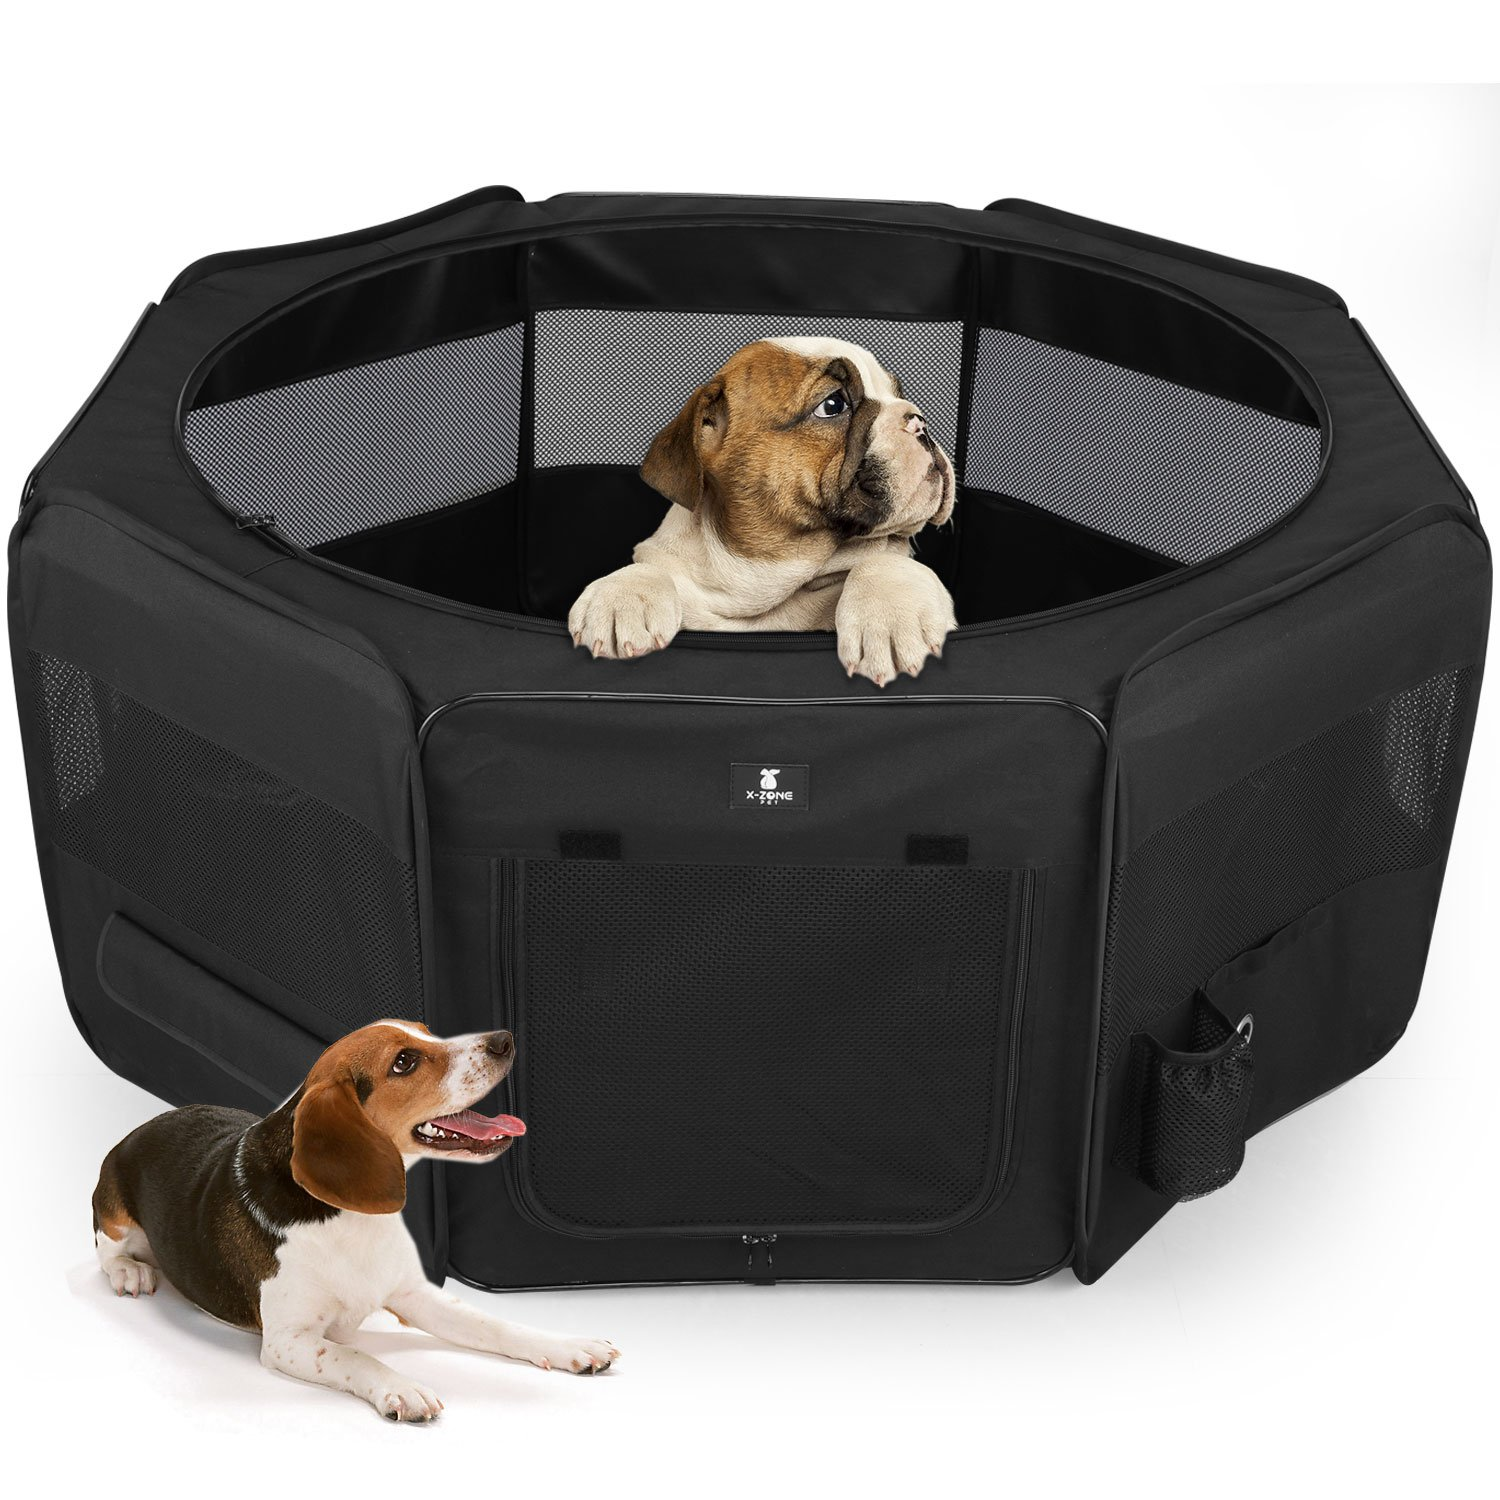 X-ZONE PET Black Playpen